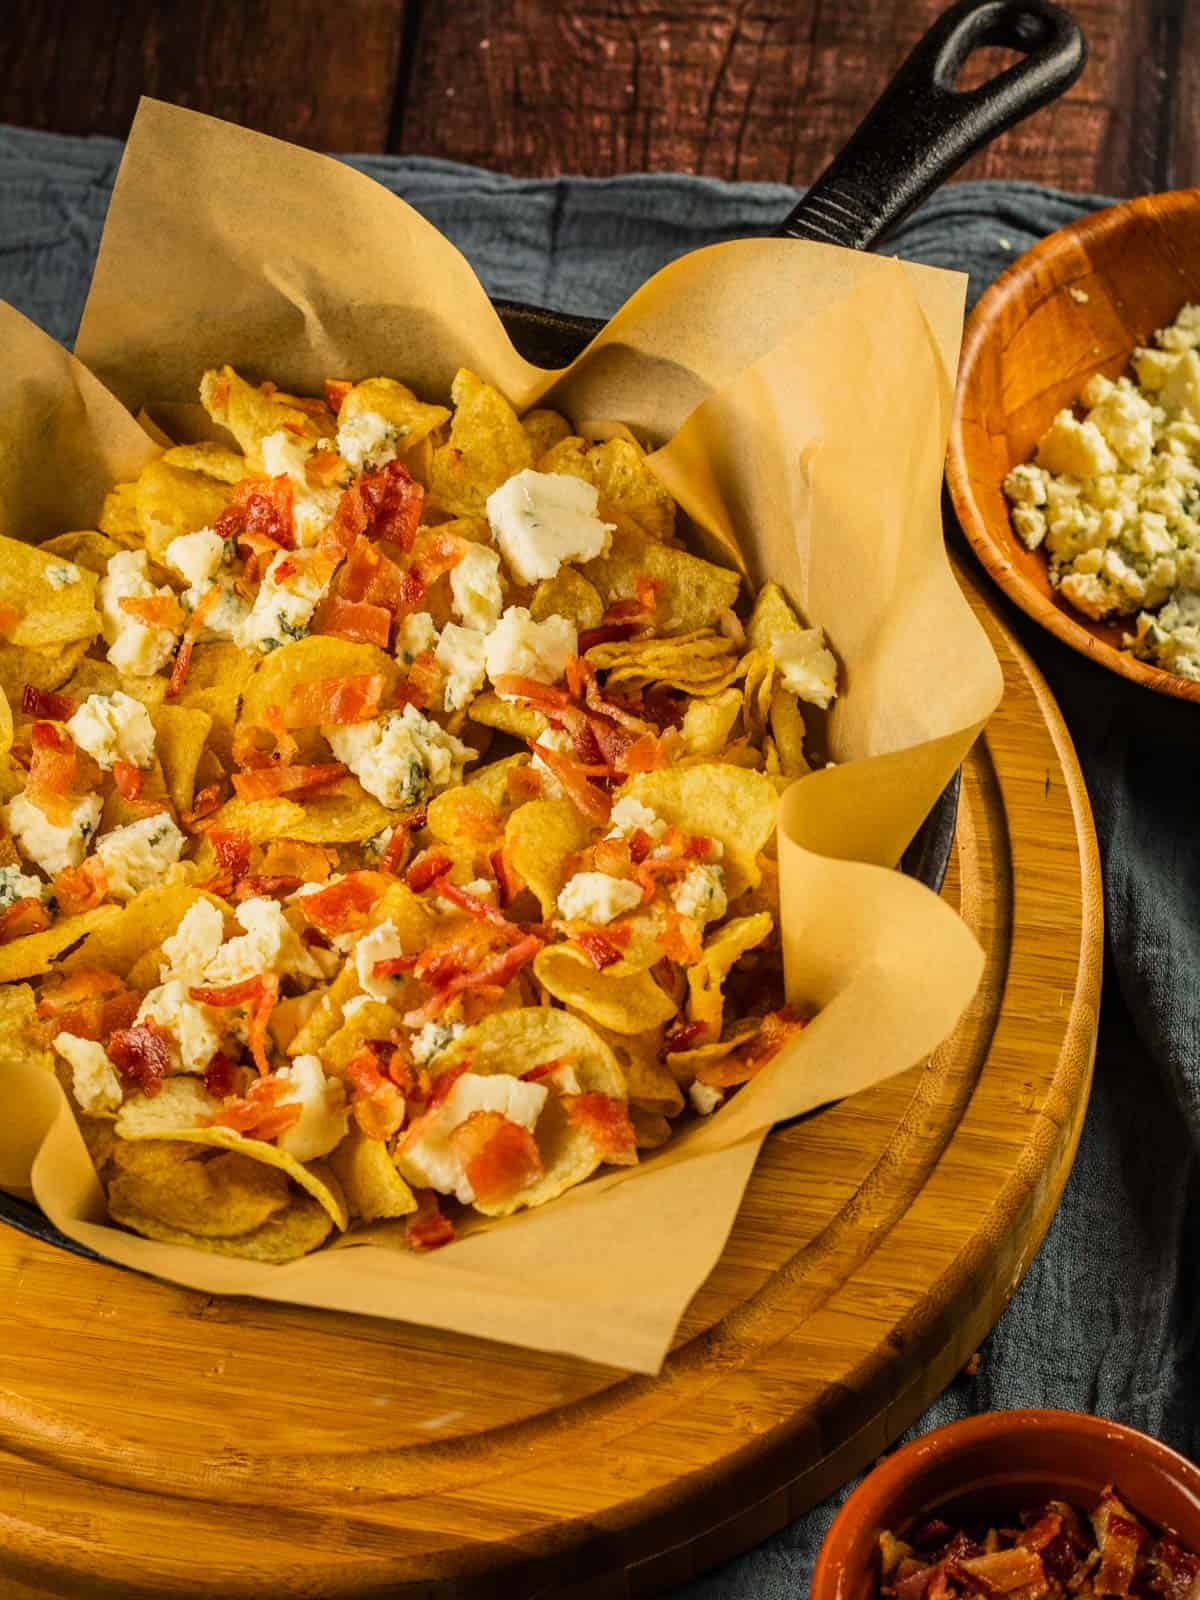 kettle chips sprinkled with bacon pieces and blue cheese crumbles